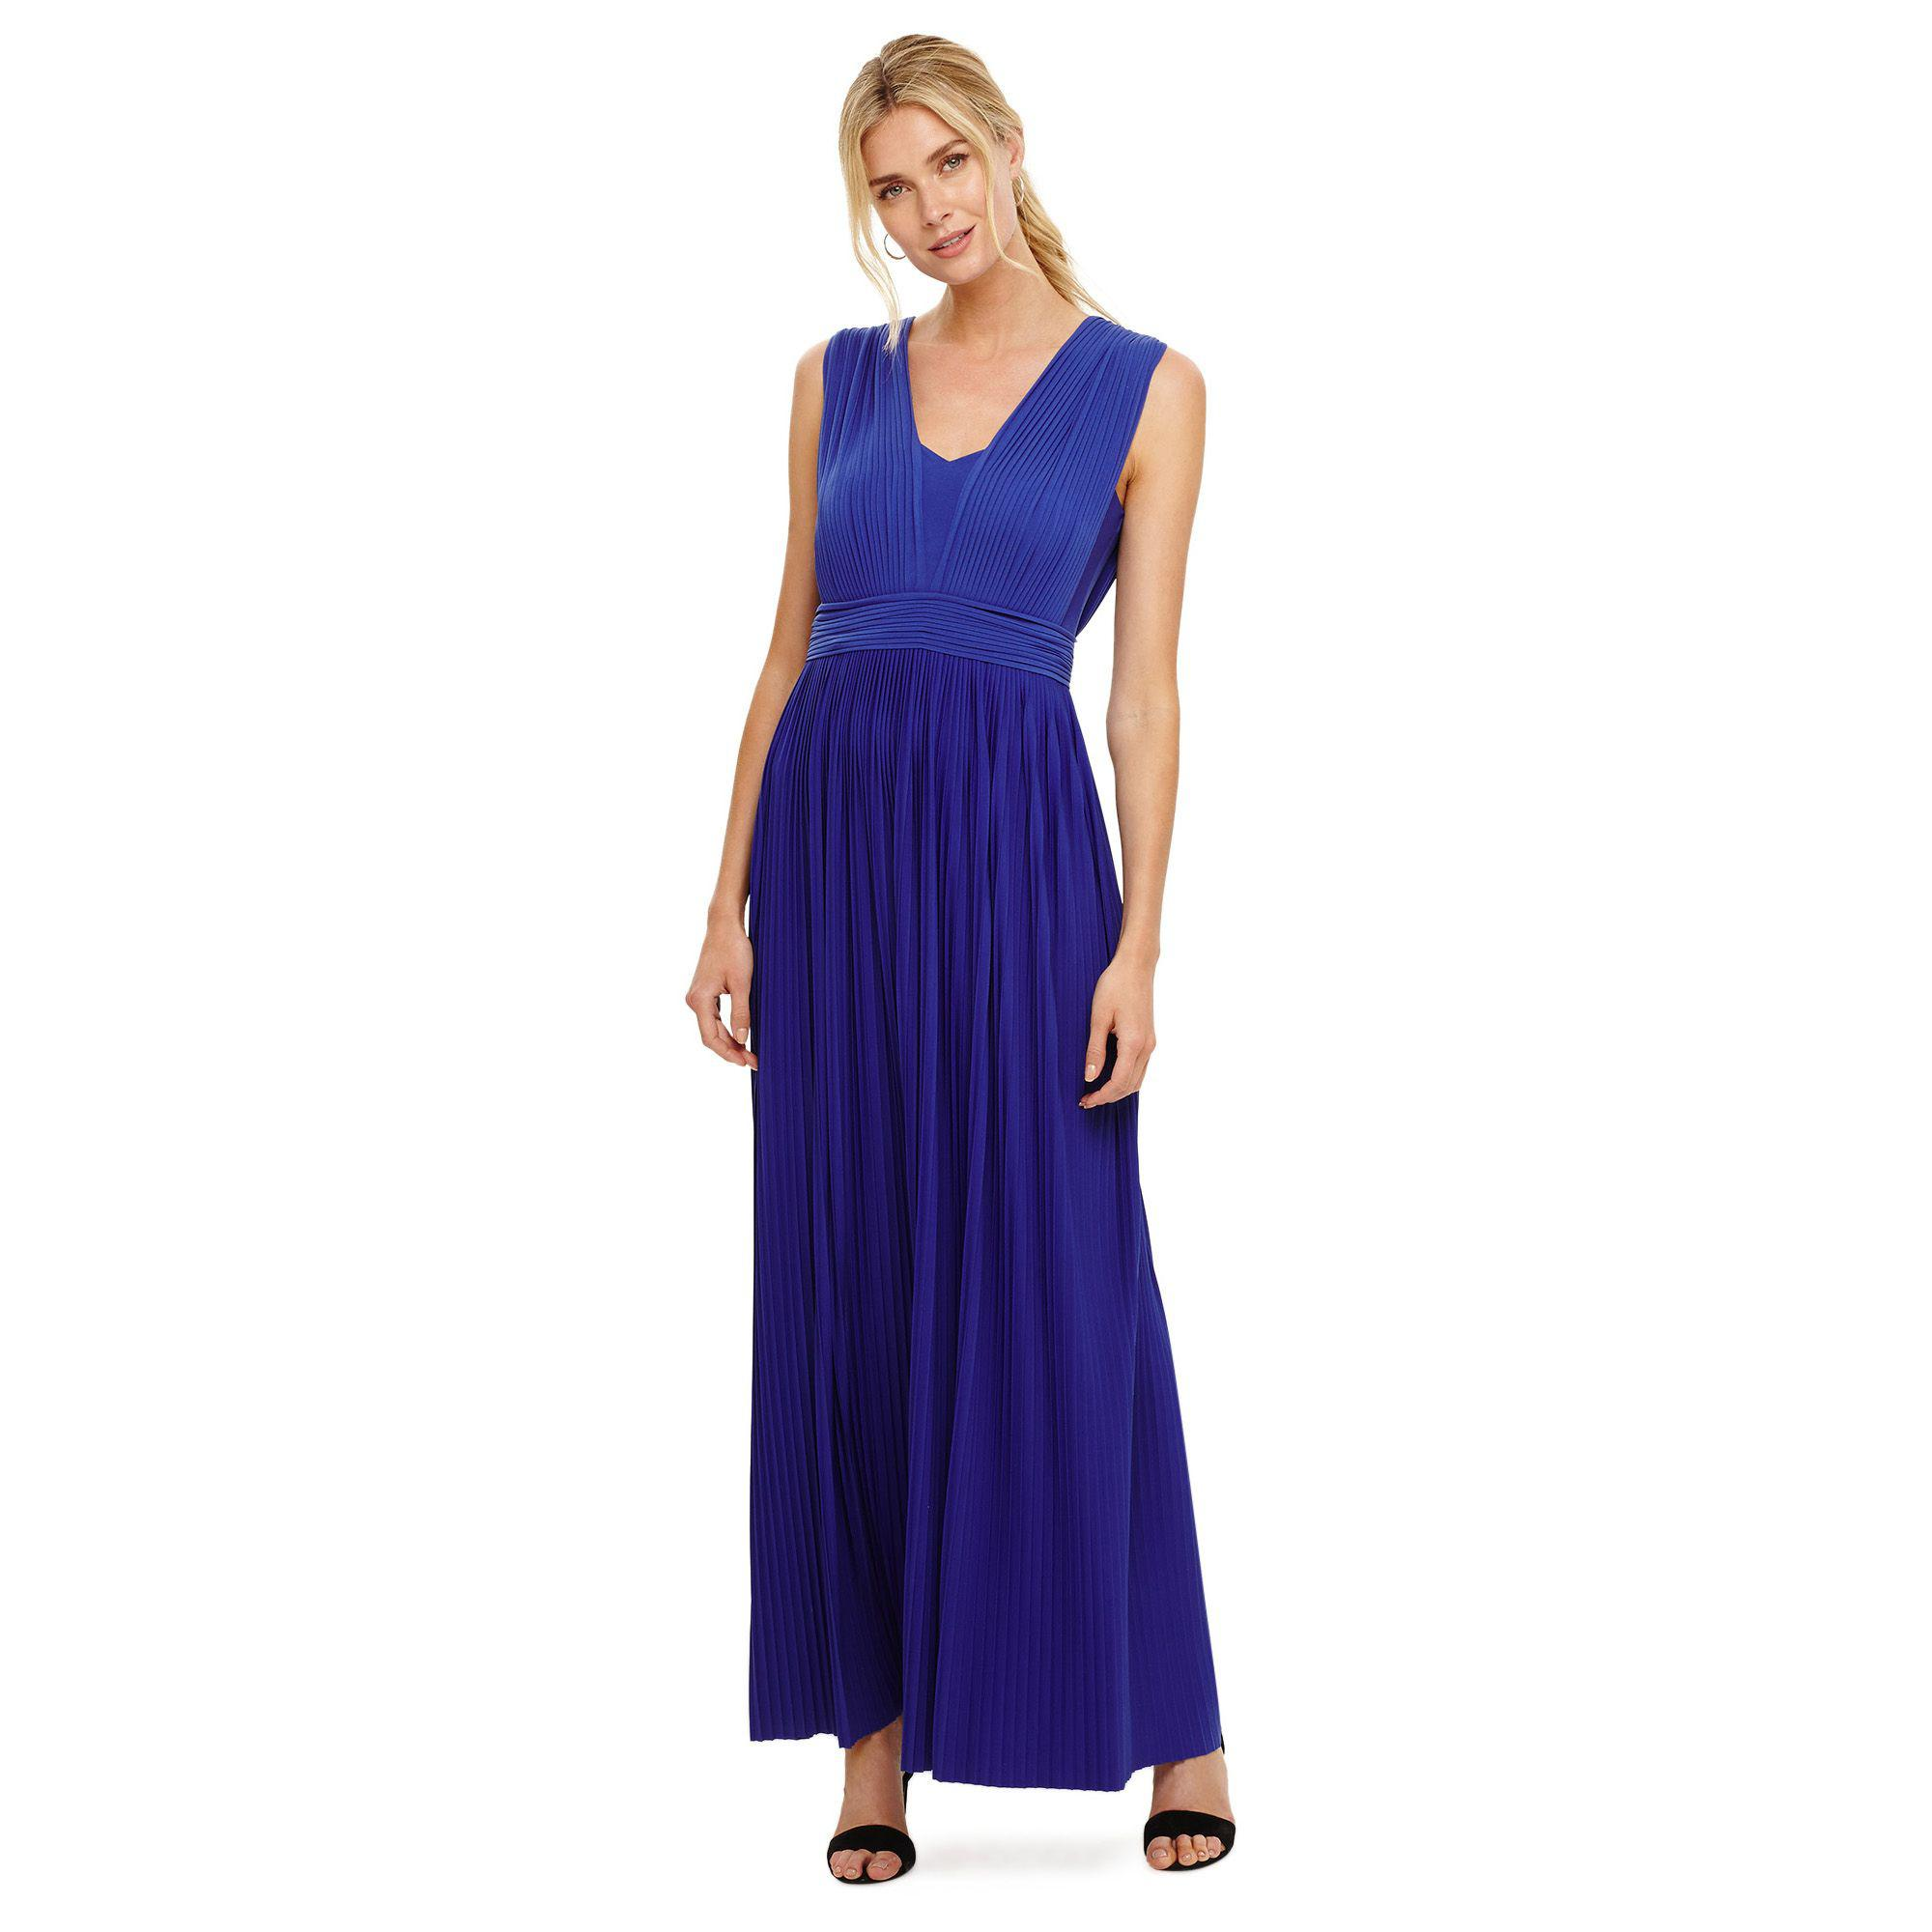 Phase Eight Aldora Pleated Maxi Dress in Blue - Lyst